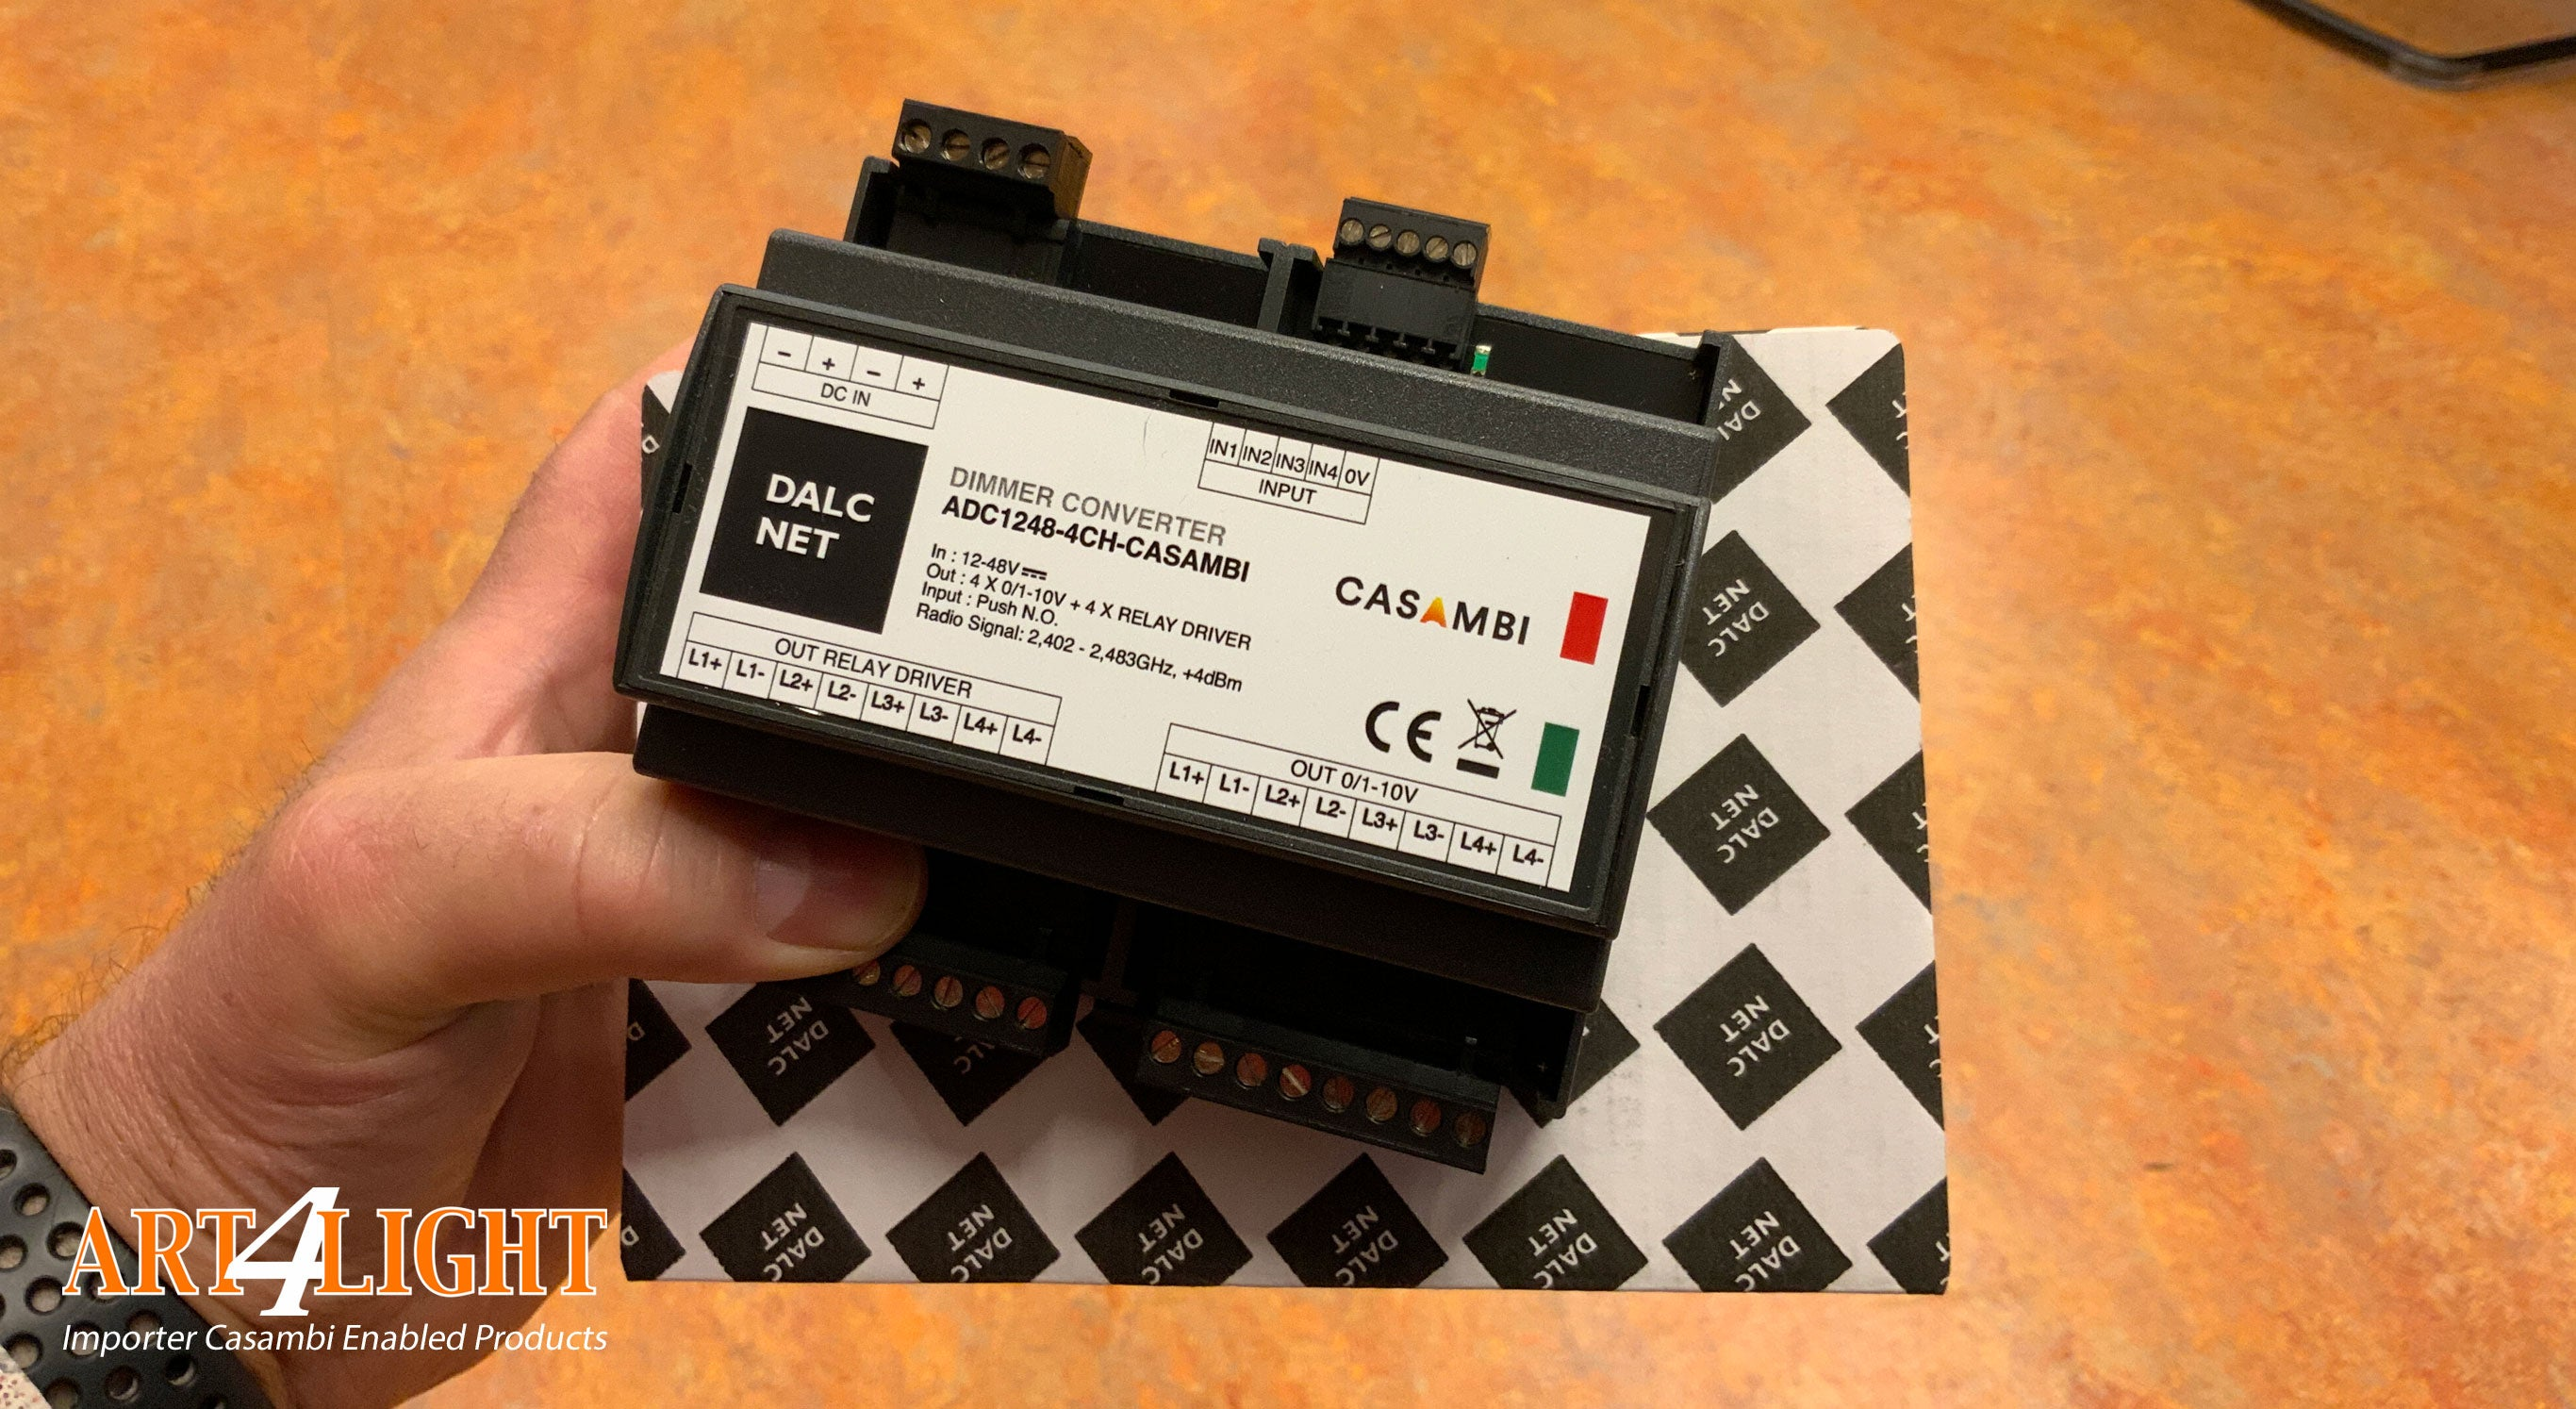 Dalcnet-Casambi-ADC-1248-4CH